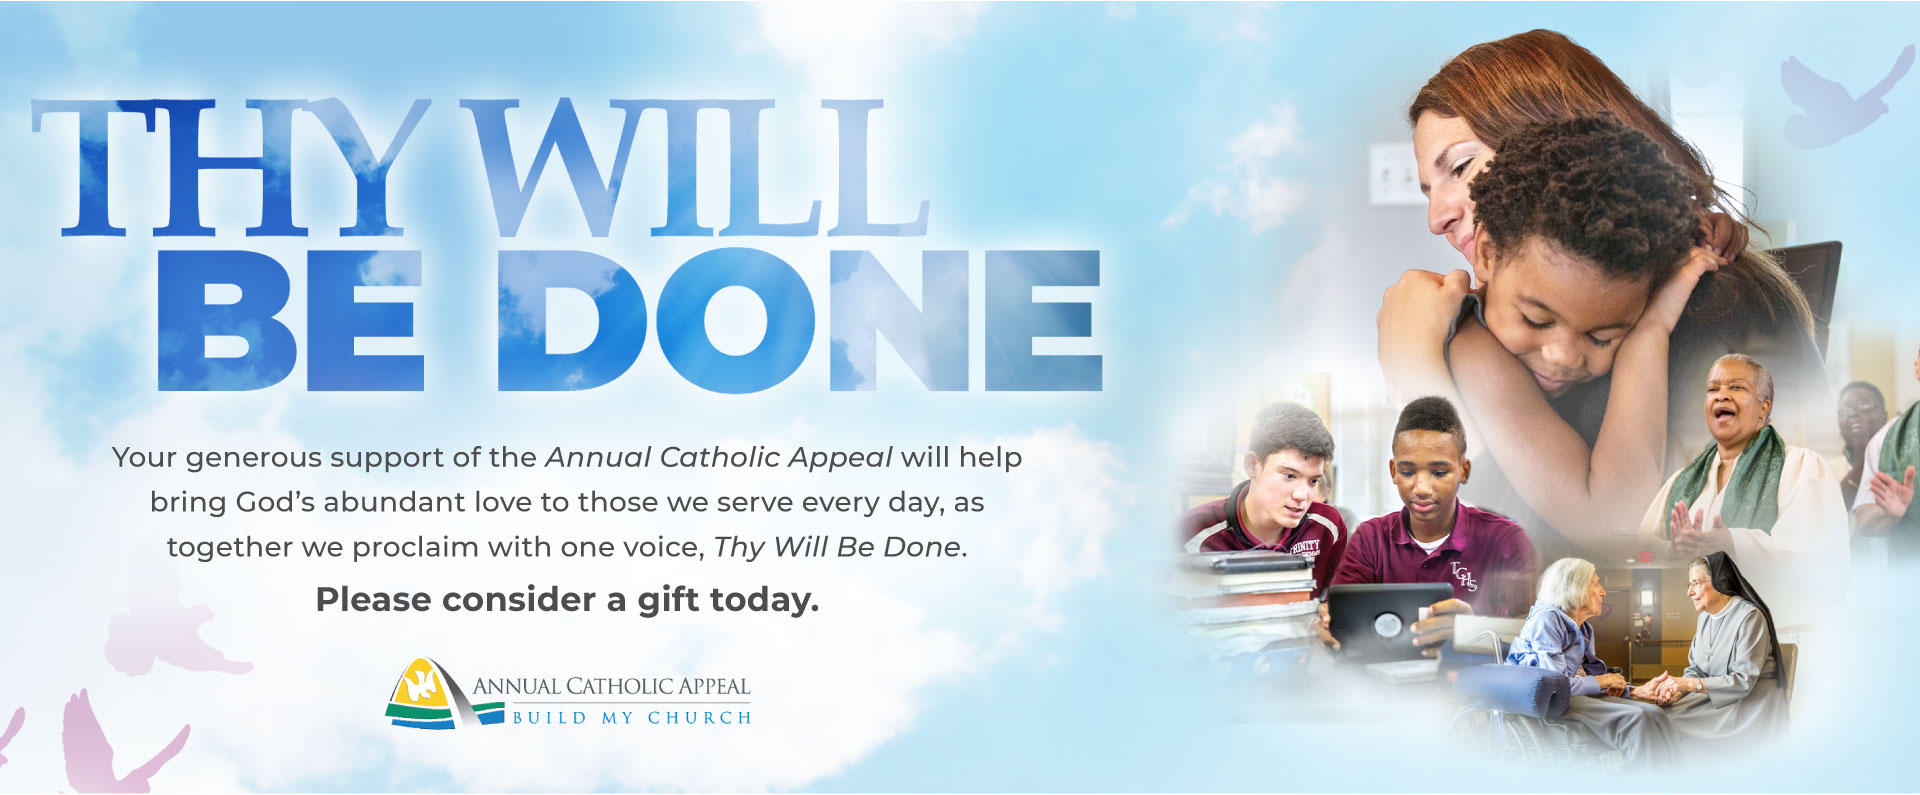 Thy Will Be Done. Annual Catholic Appeal